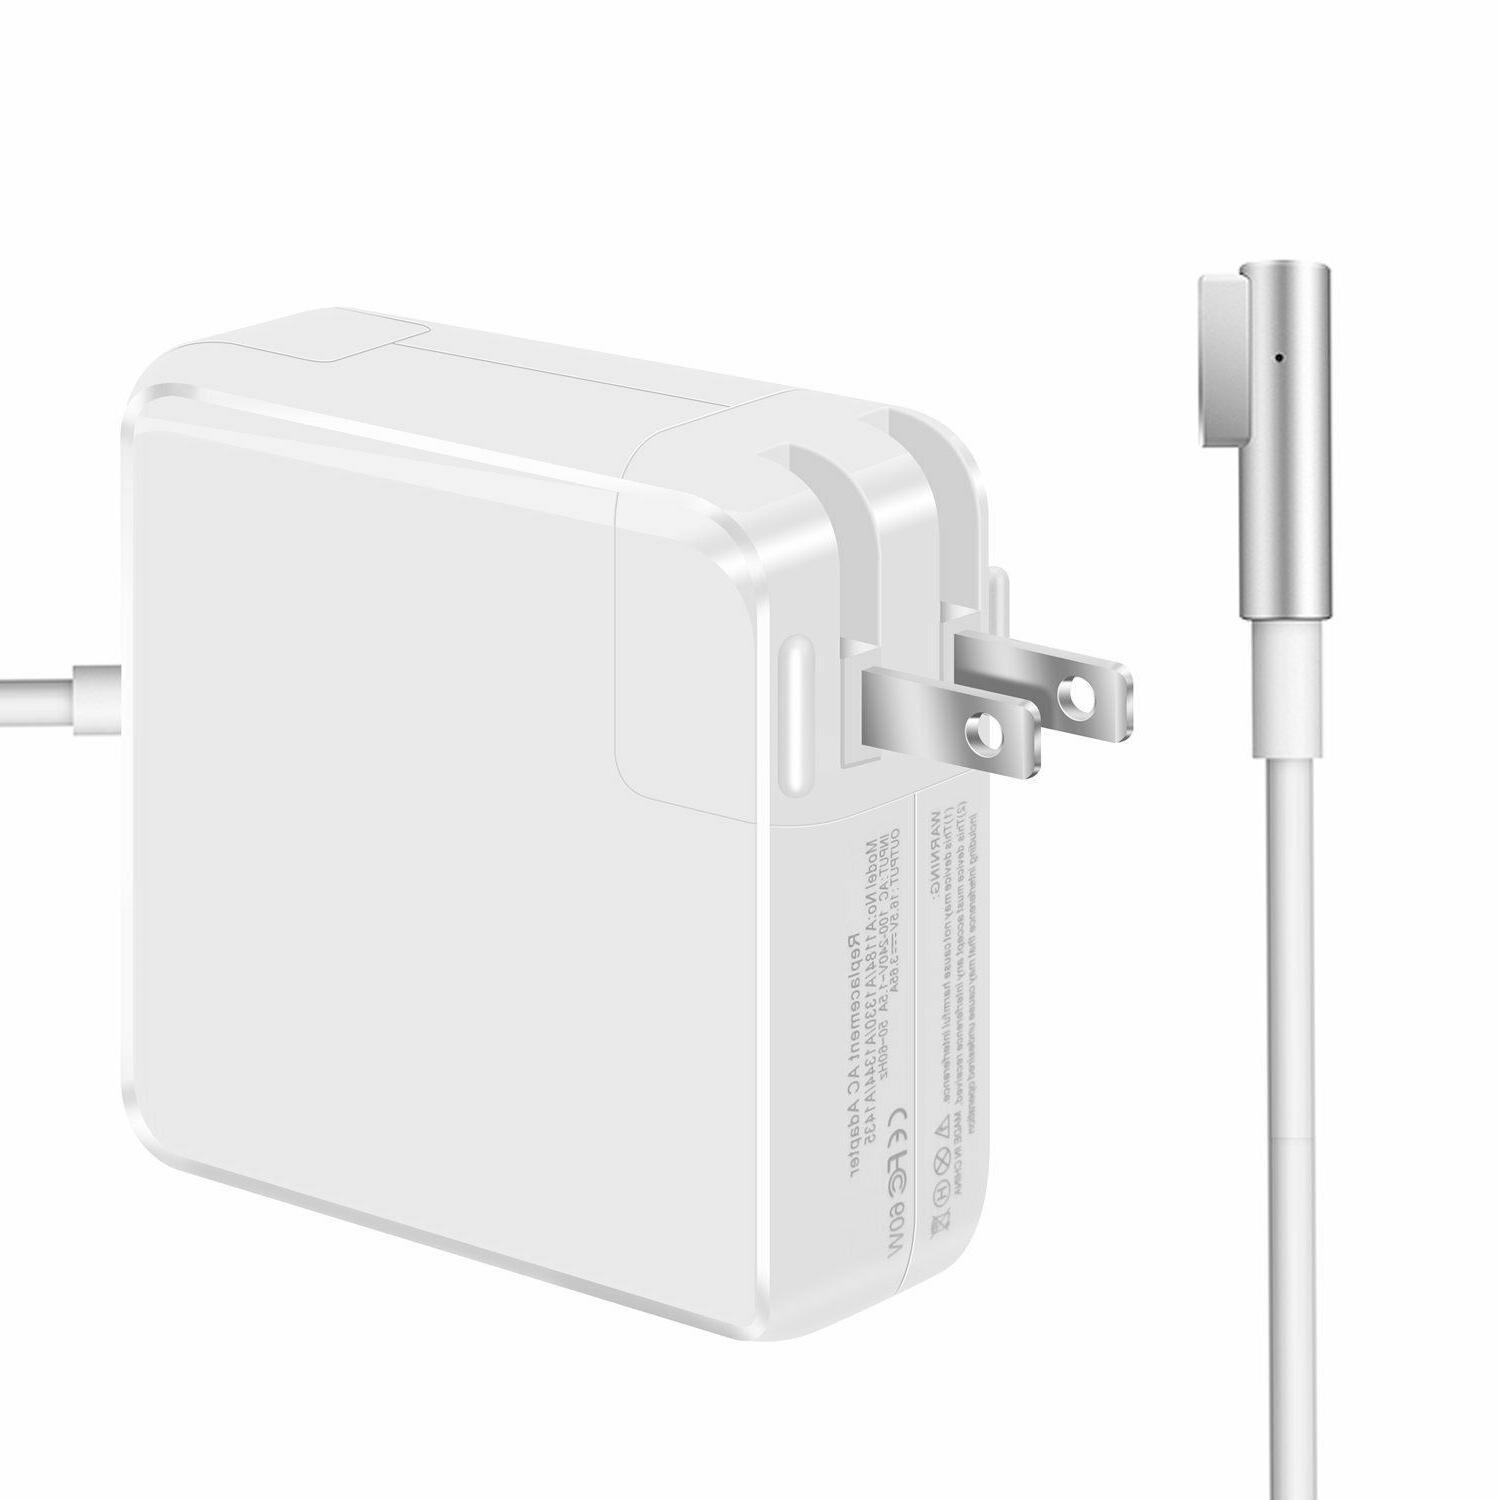 Macbook Pro Charger, 60W L-Tip Replacement Power Adapter For